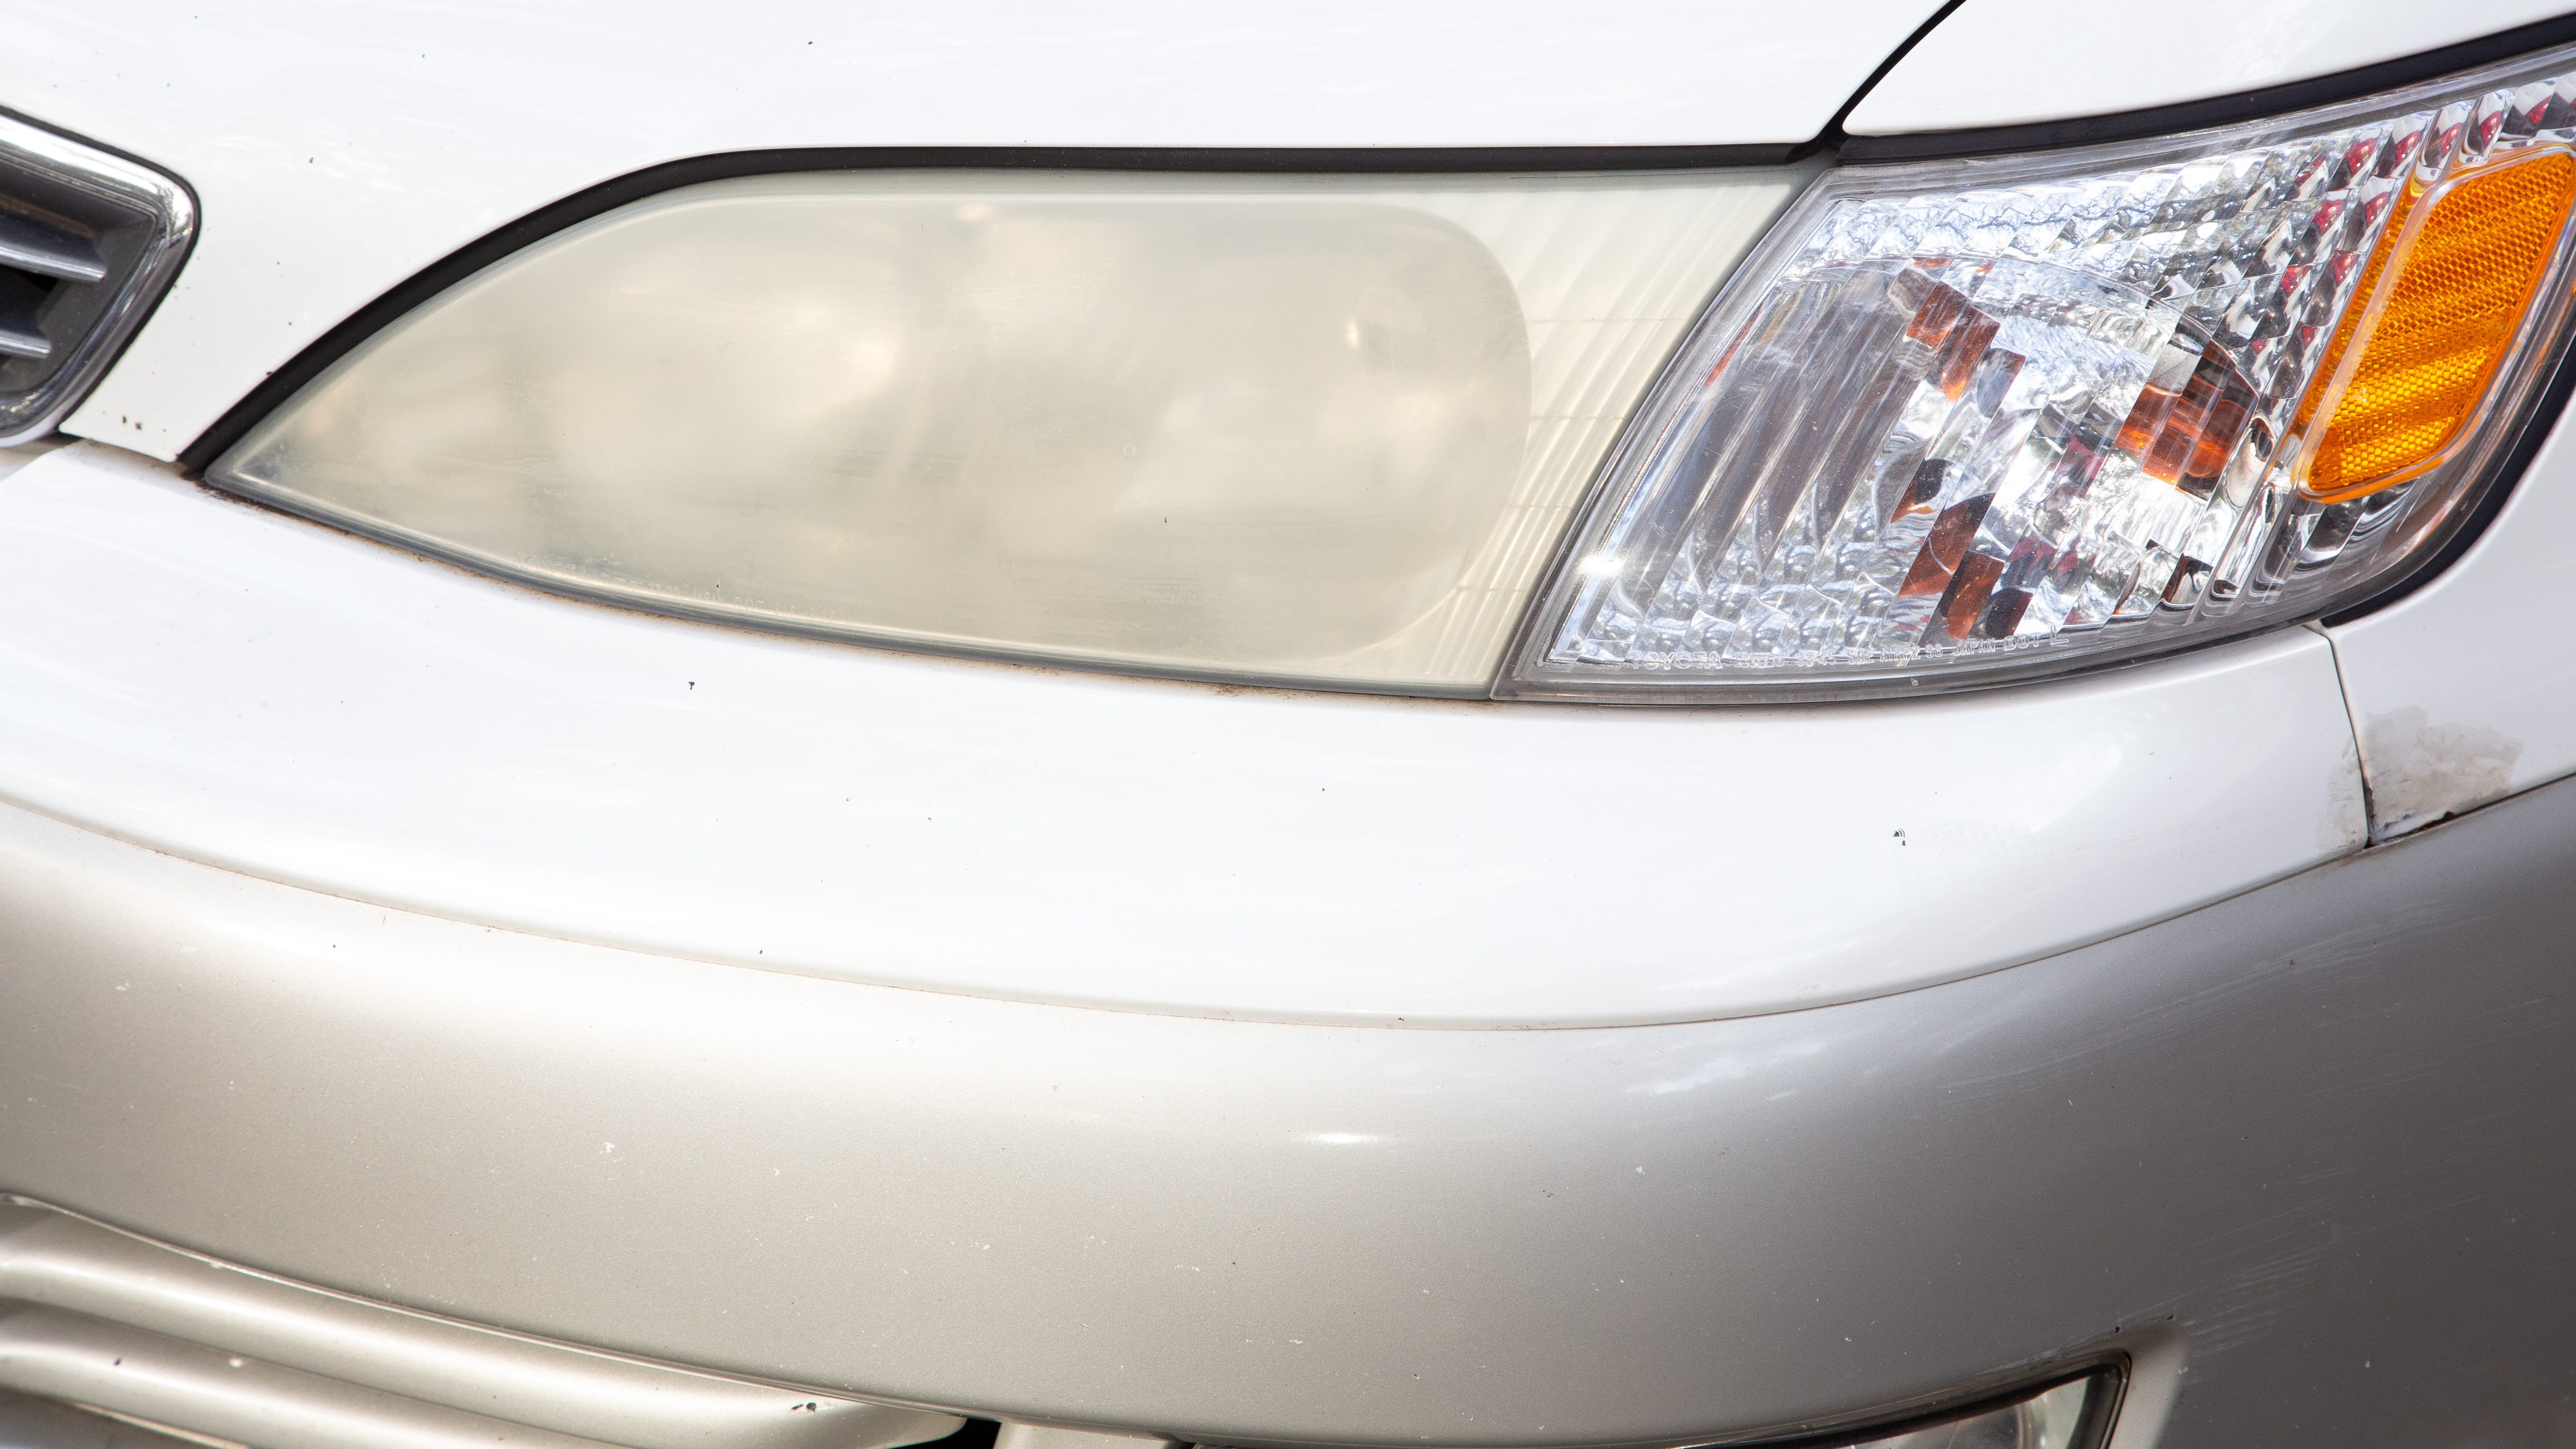 Why older headlights are a 'major safety concern' for American motorists